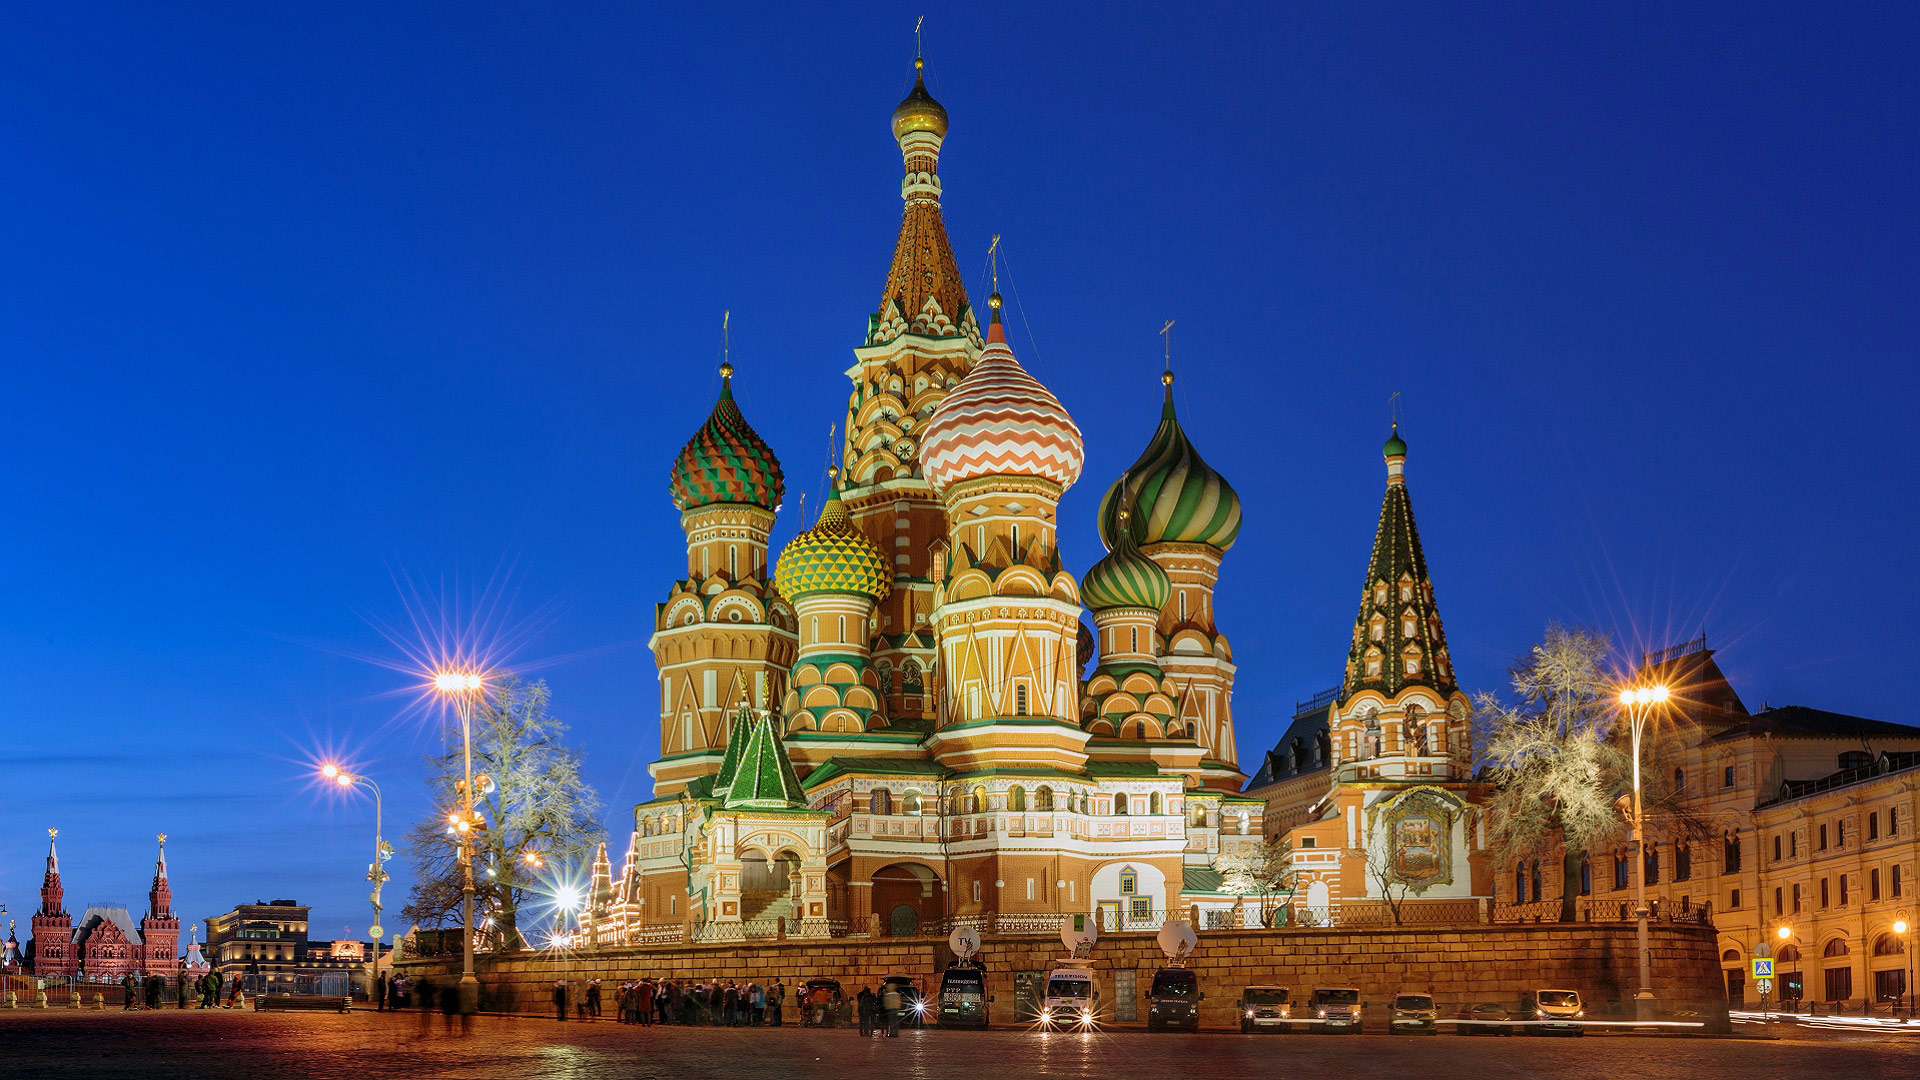 The Kremlin, St. Basil's Cathedral, and Red Square in Moscow, Russia with GeoEx